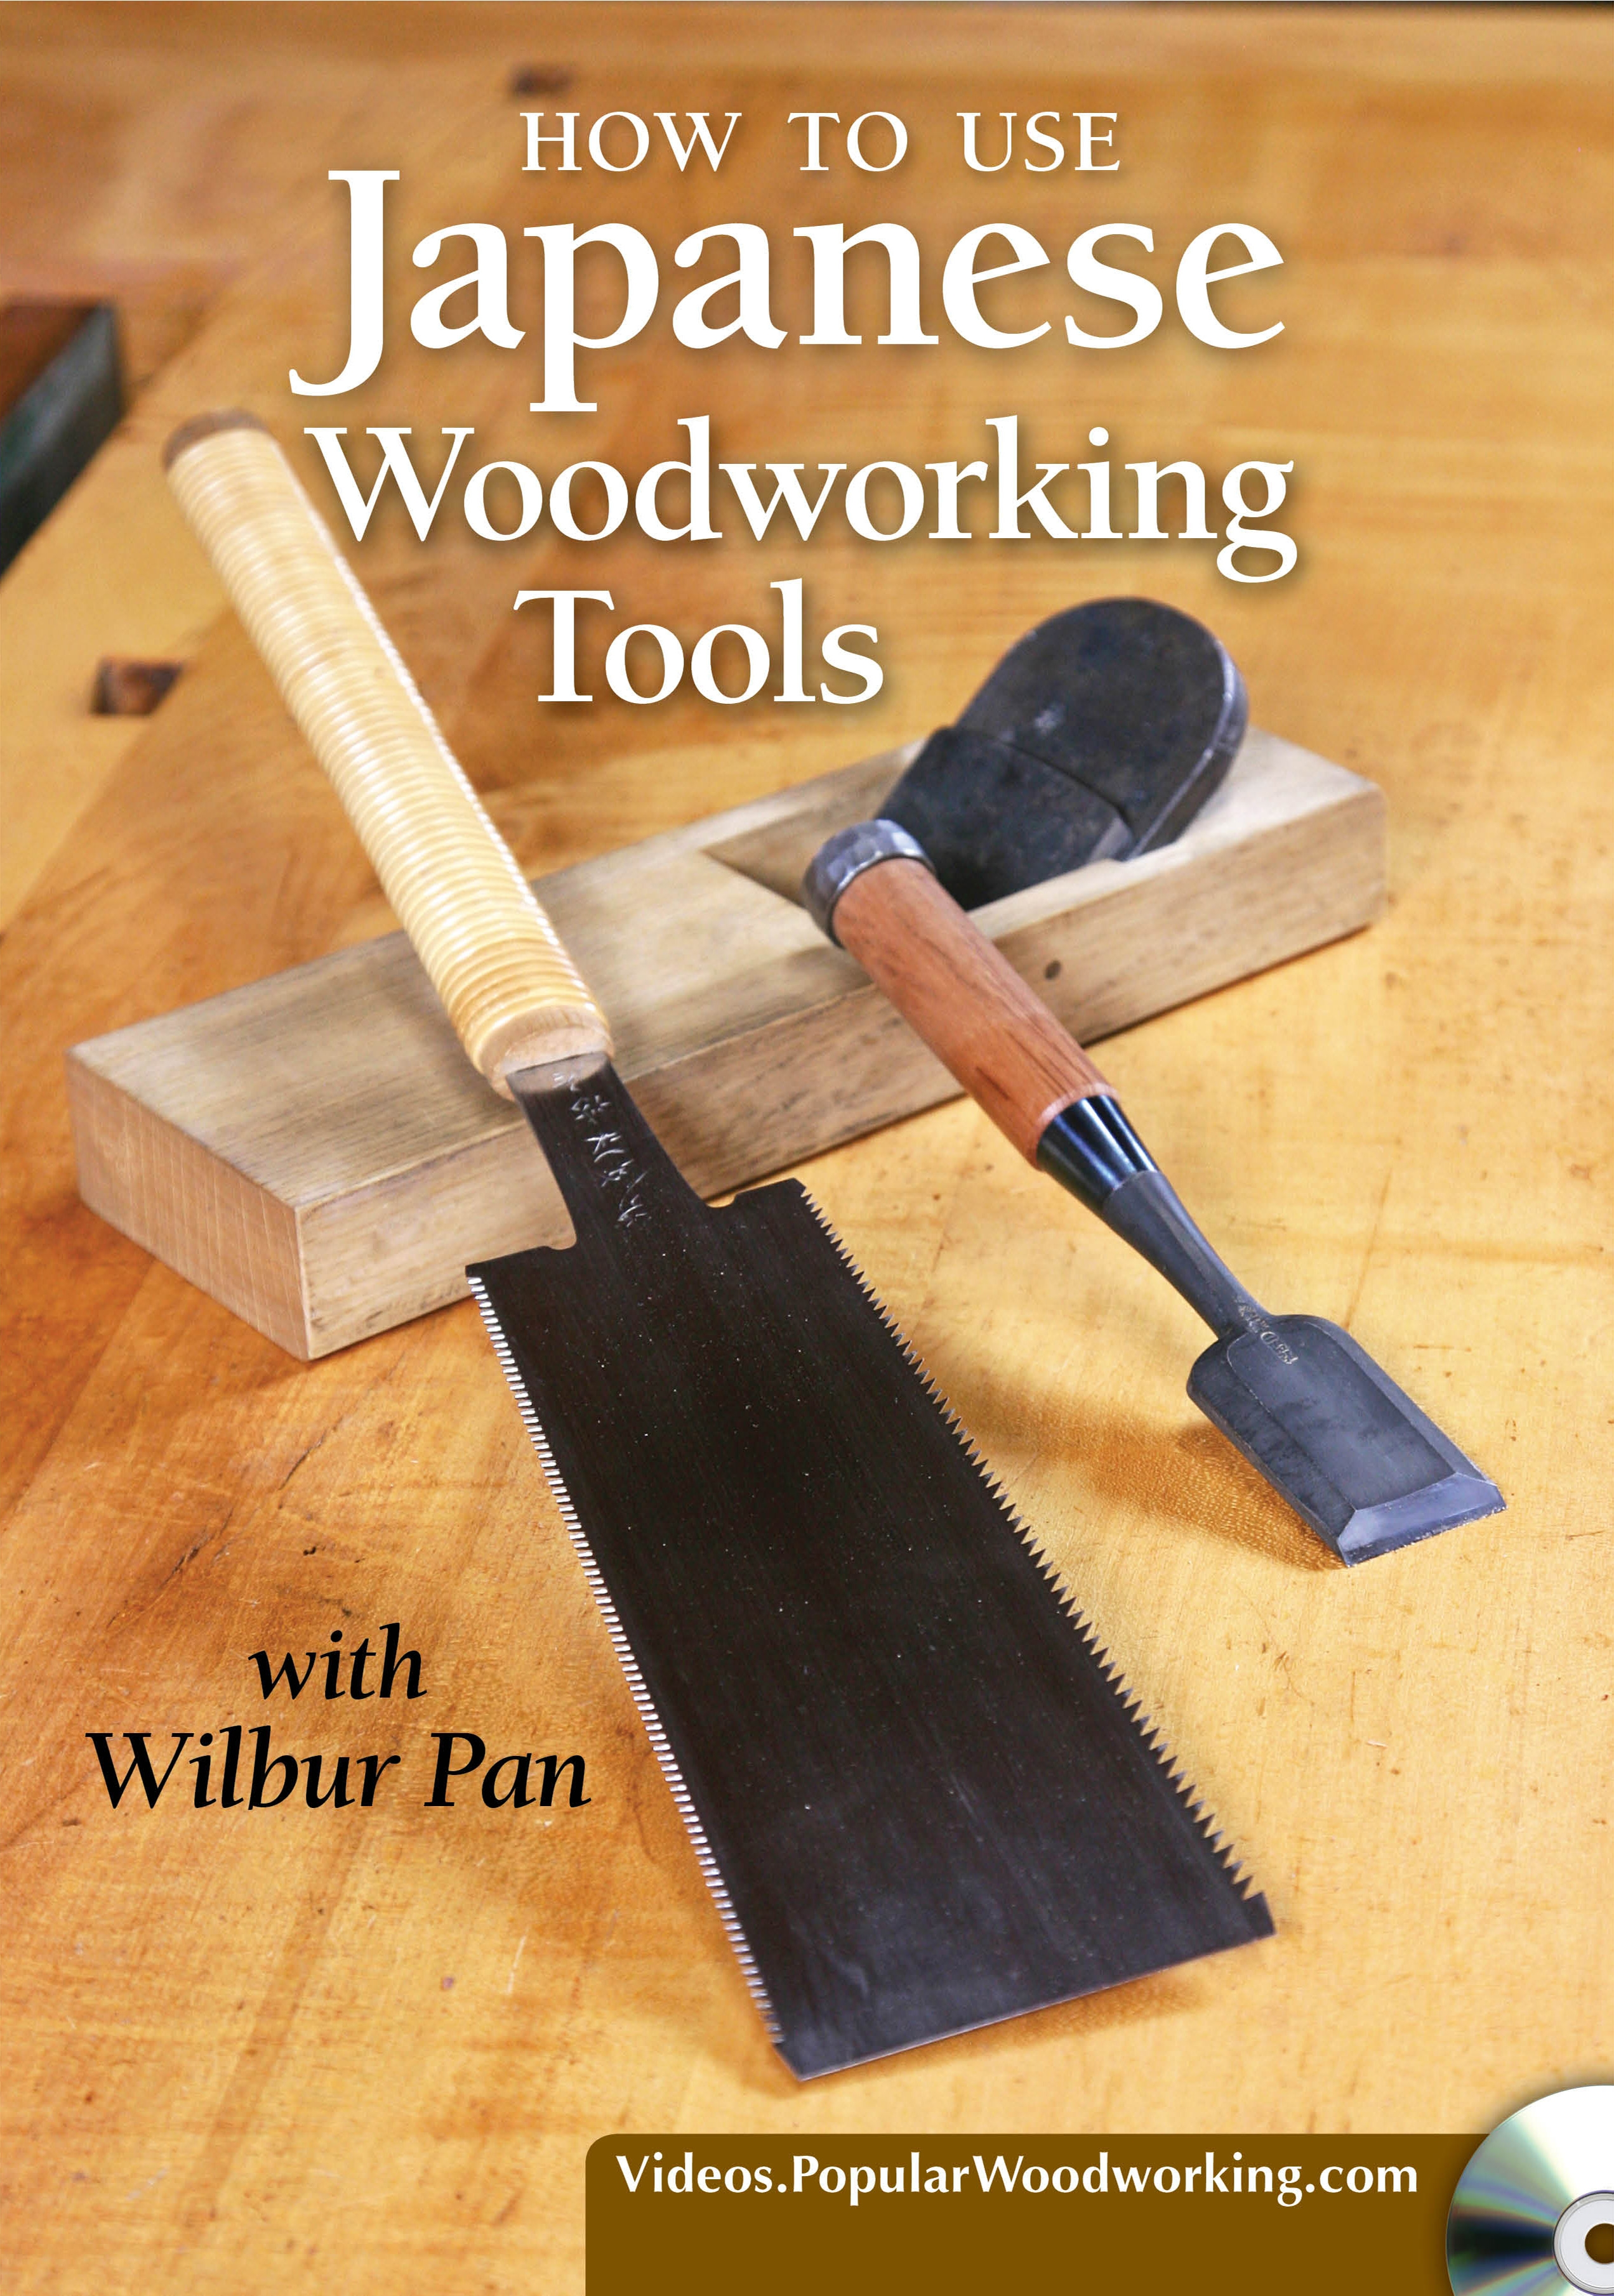 How to Use Japanese Woodworking Tools Video Download Popular Woodworking Magazine